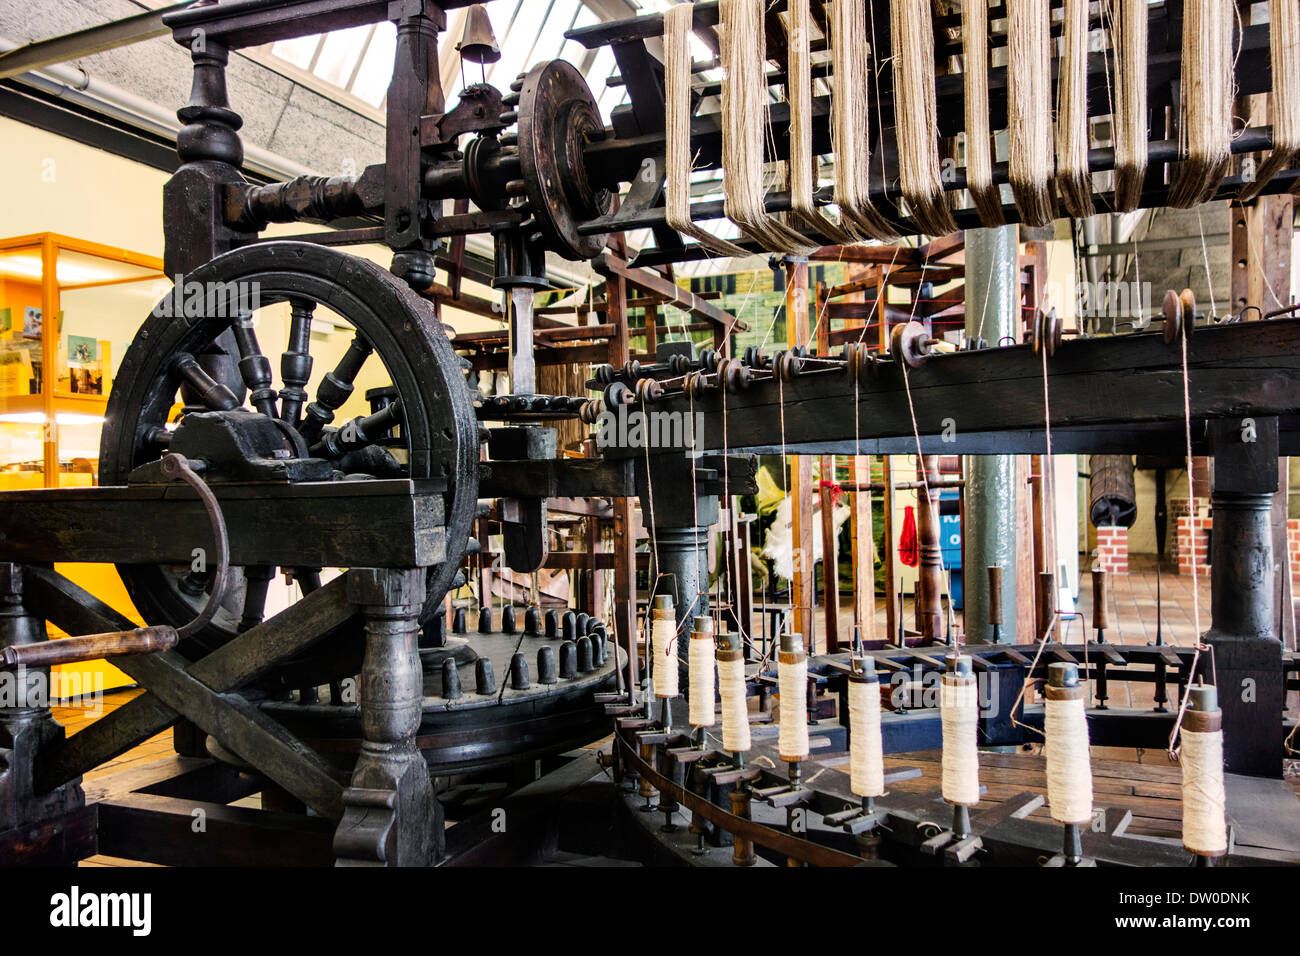 Old flax twine mill / wooden yarn twisting machine from 1789 at MIAT, industrial archaeology museum, Ghent, Belgium - Stock Image